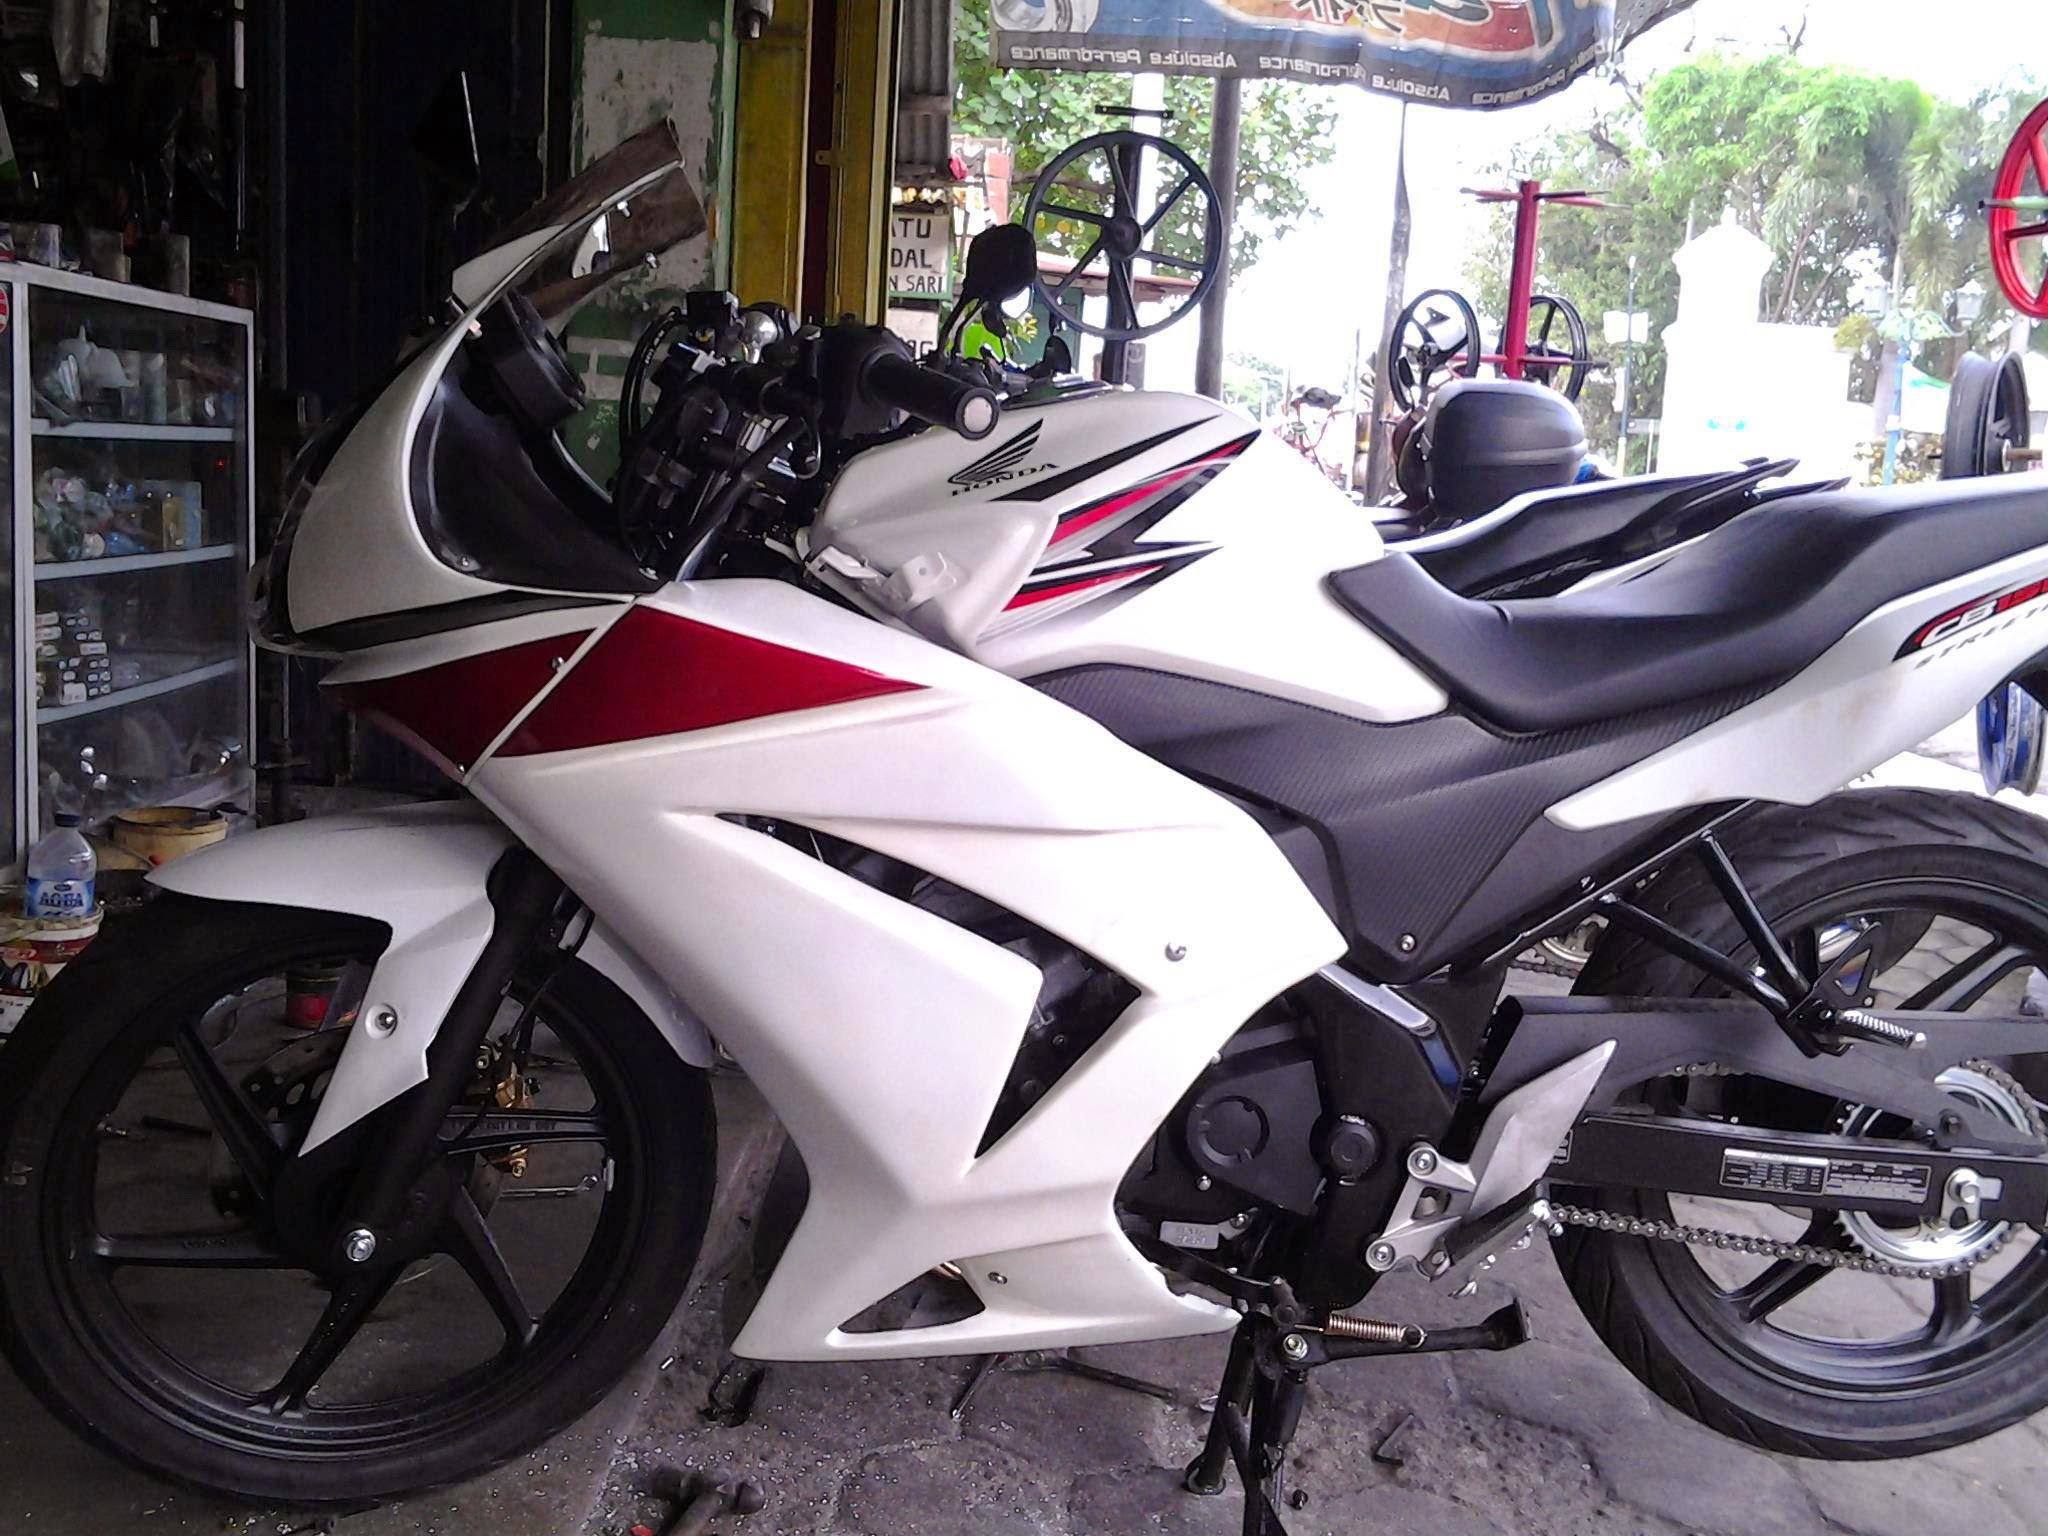 Cb150r Modifikasi Half Fairing